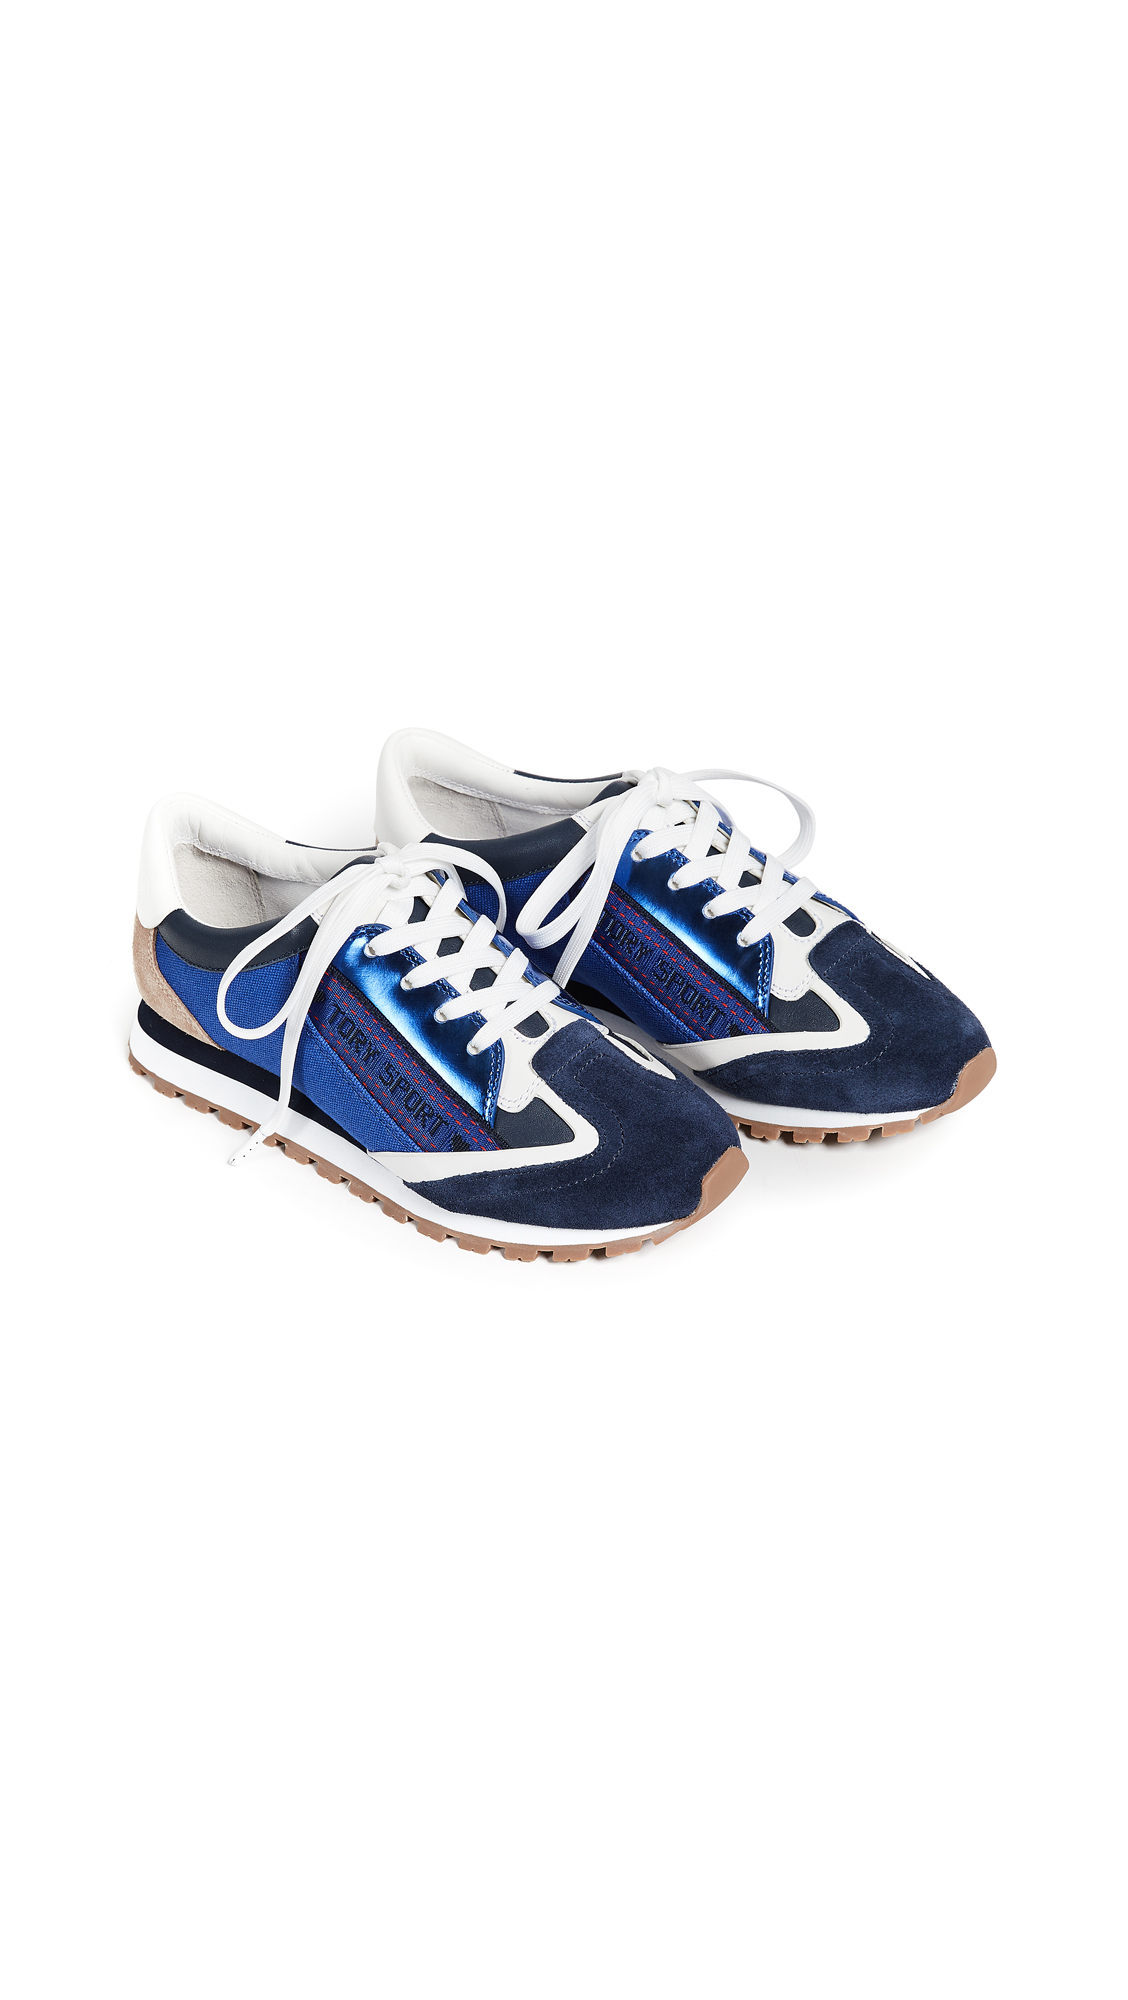 Tory Sport Banner Trainer Sneakers - Bright Navy/Slalom Blue